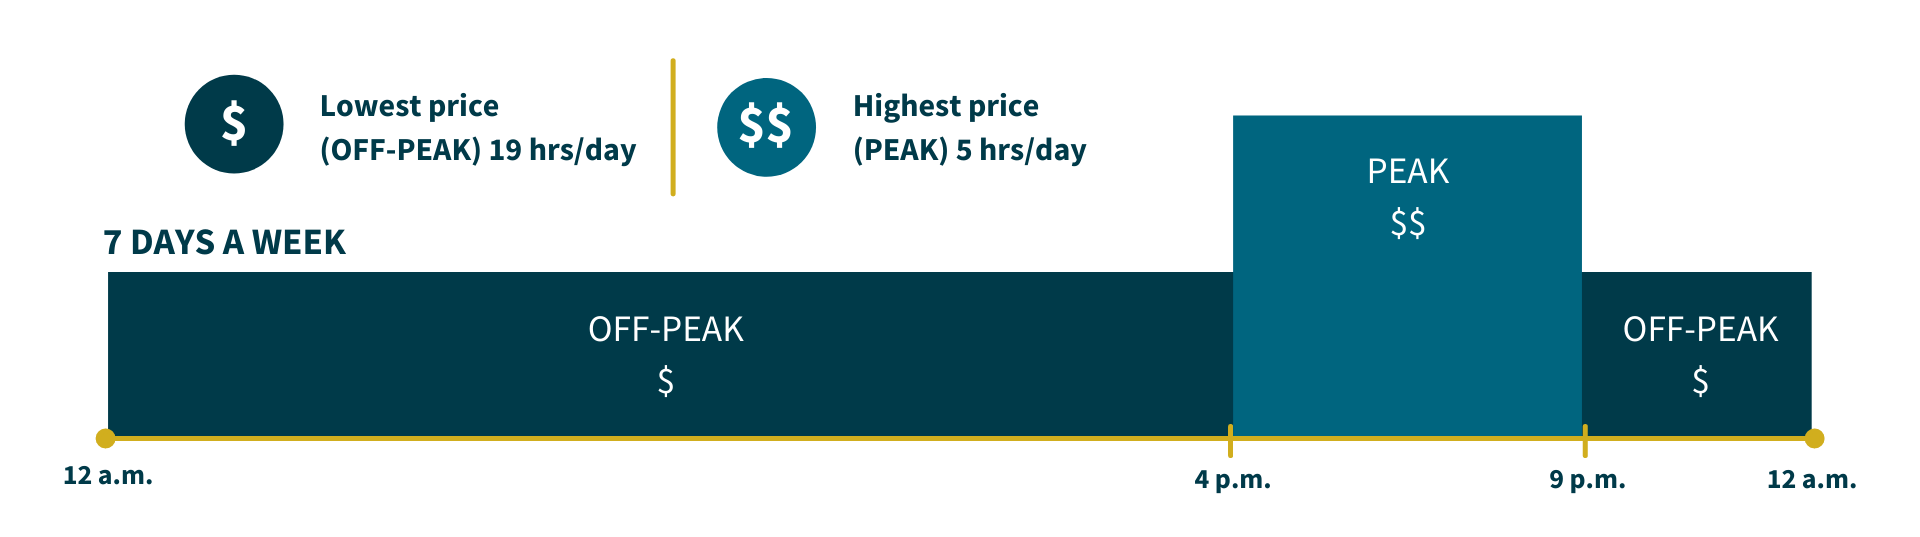 "Info graphic showing higher prices during ""peak"" period and lower prices during ""off-peak"" period."